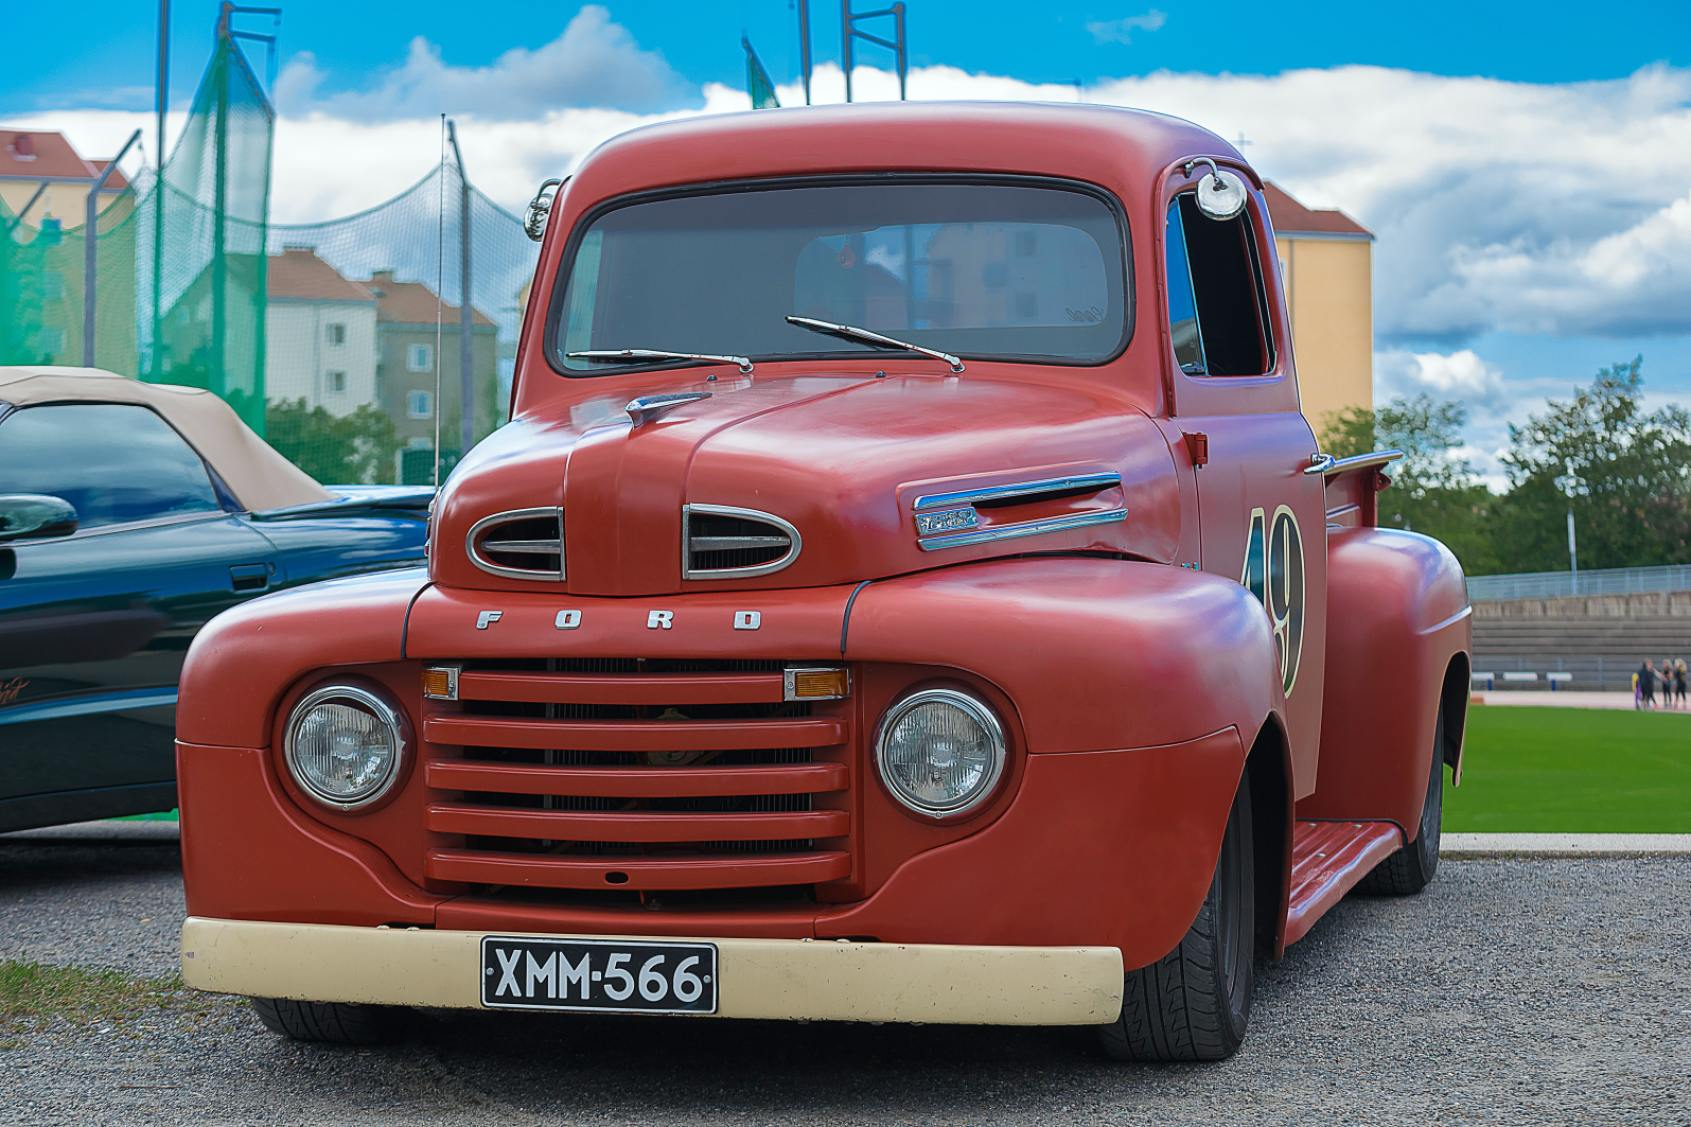 Red Lorry Ford - Original image